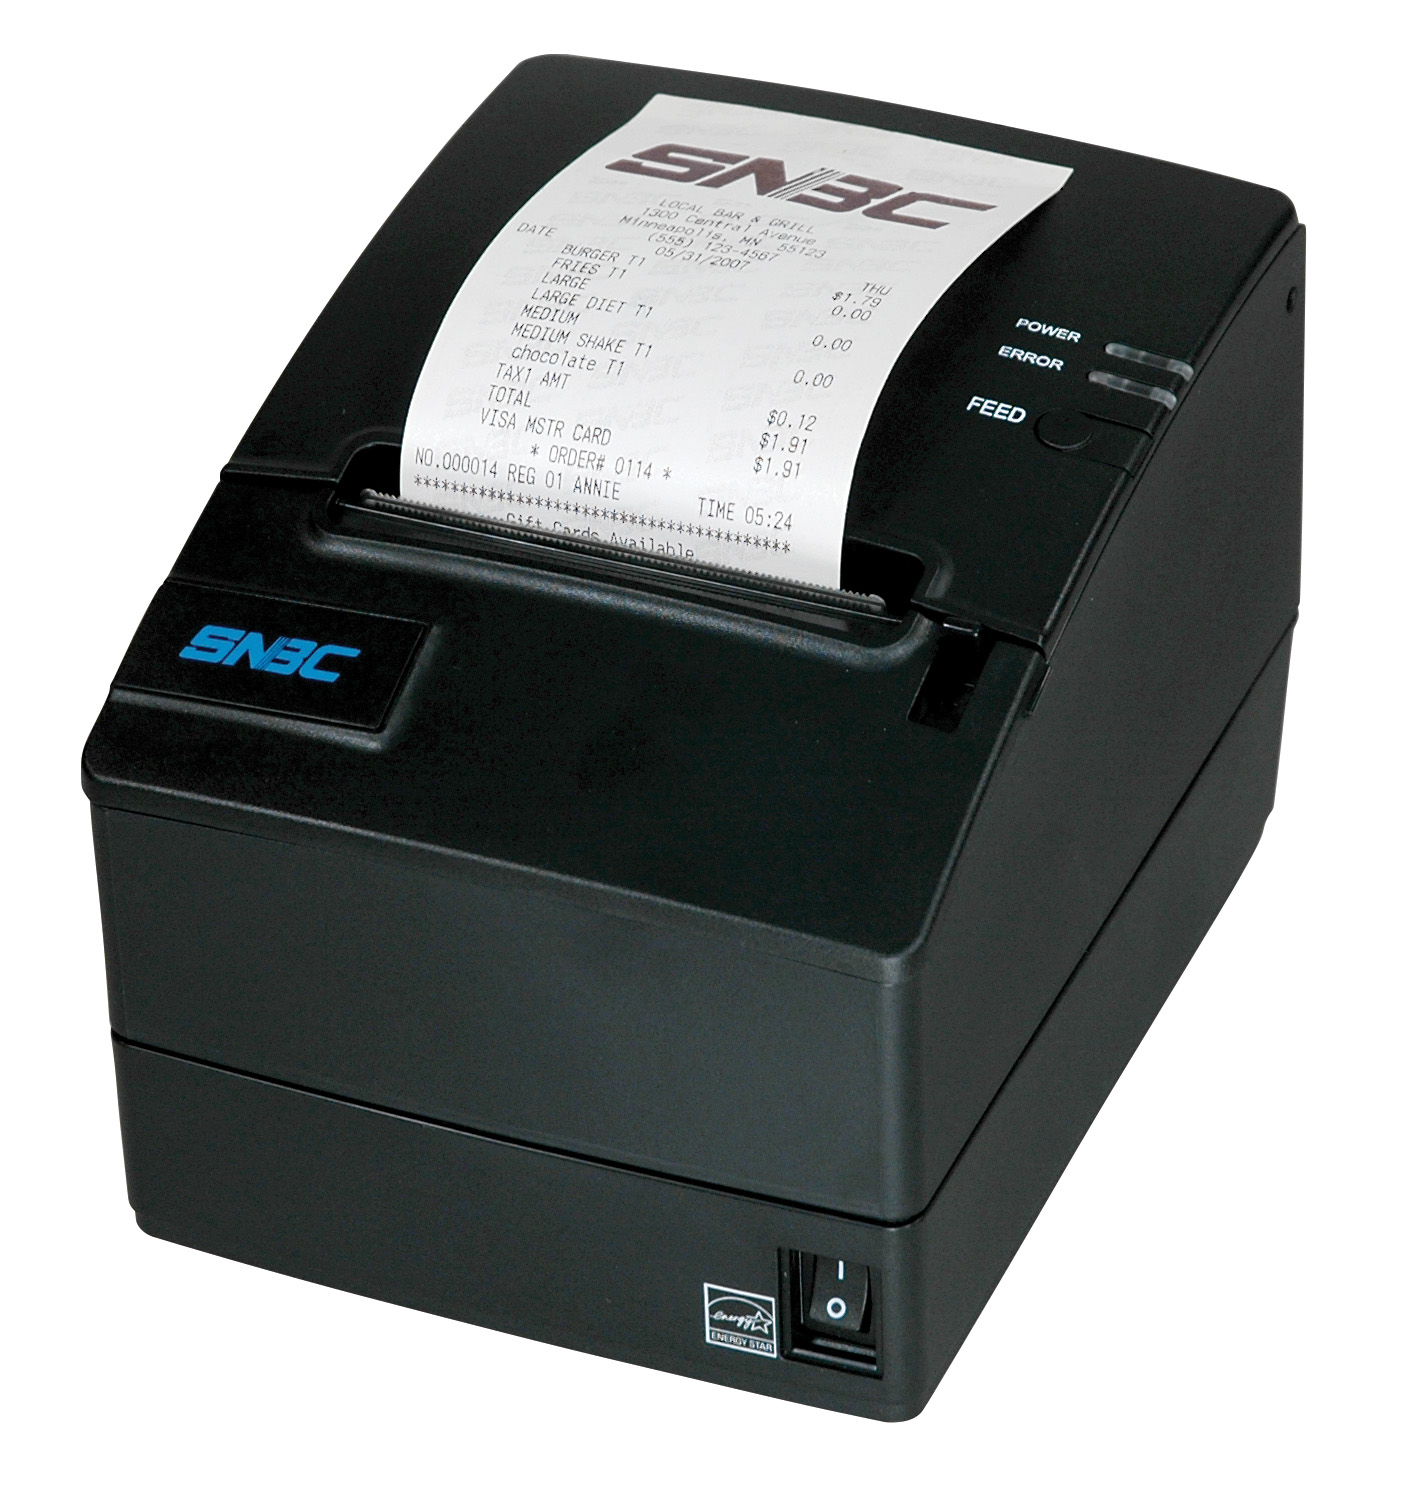 SNBC BTP-R980III Thermal Receipt Printer